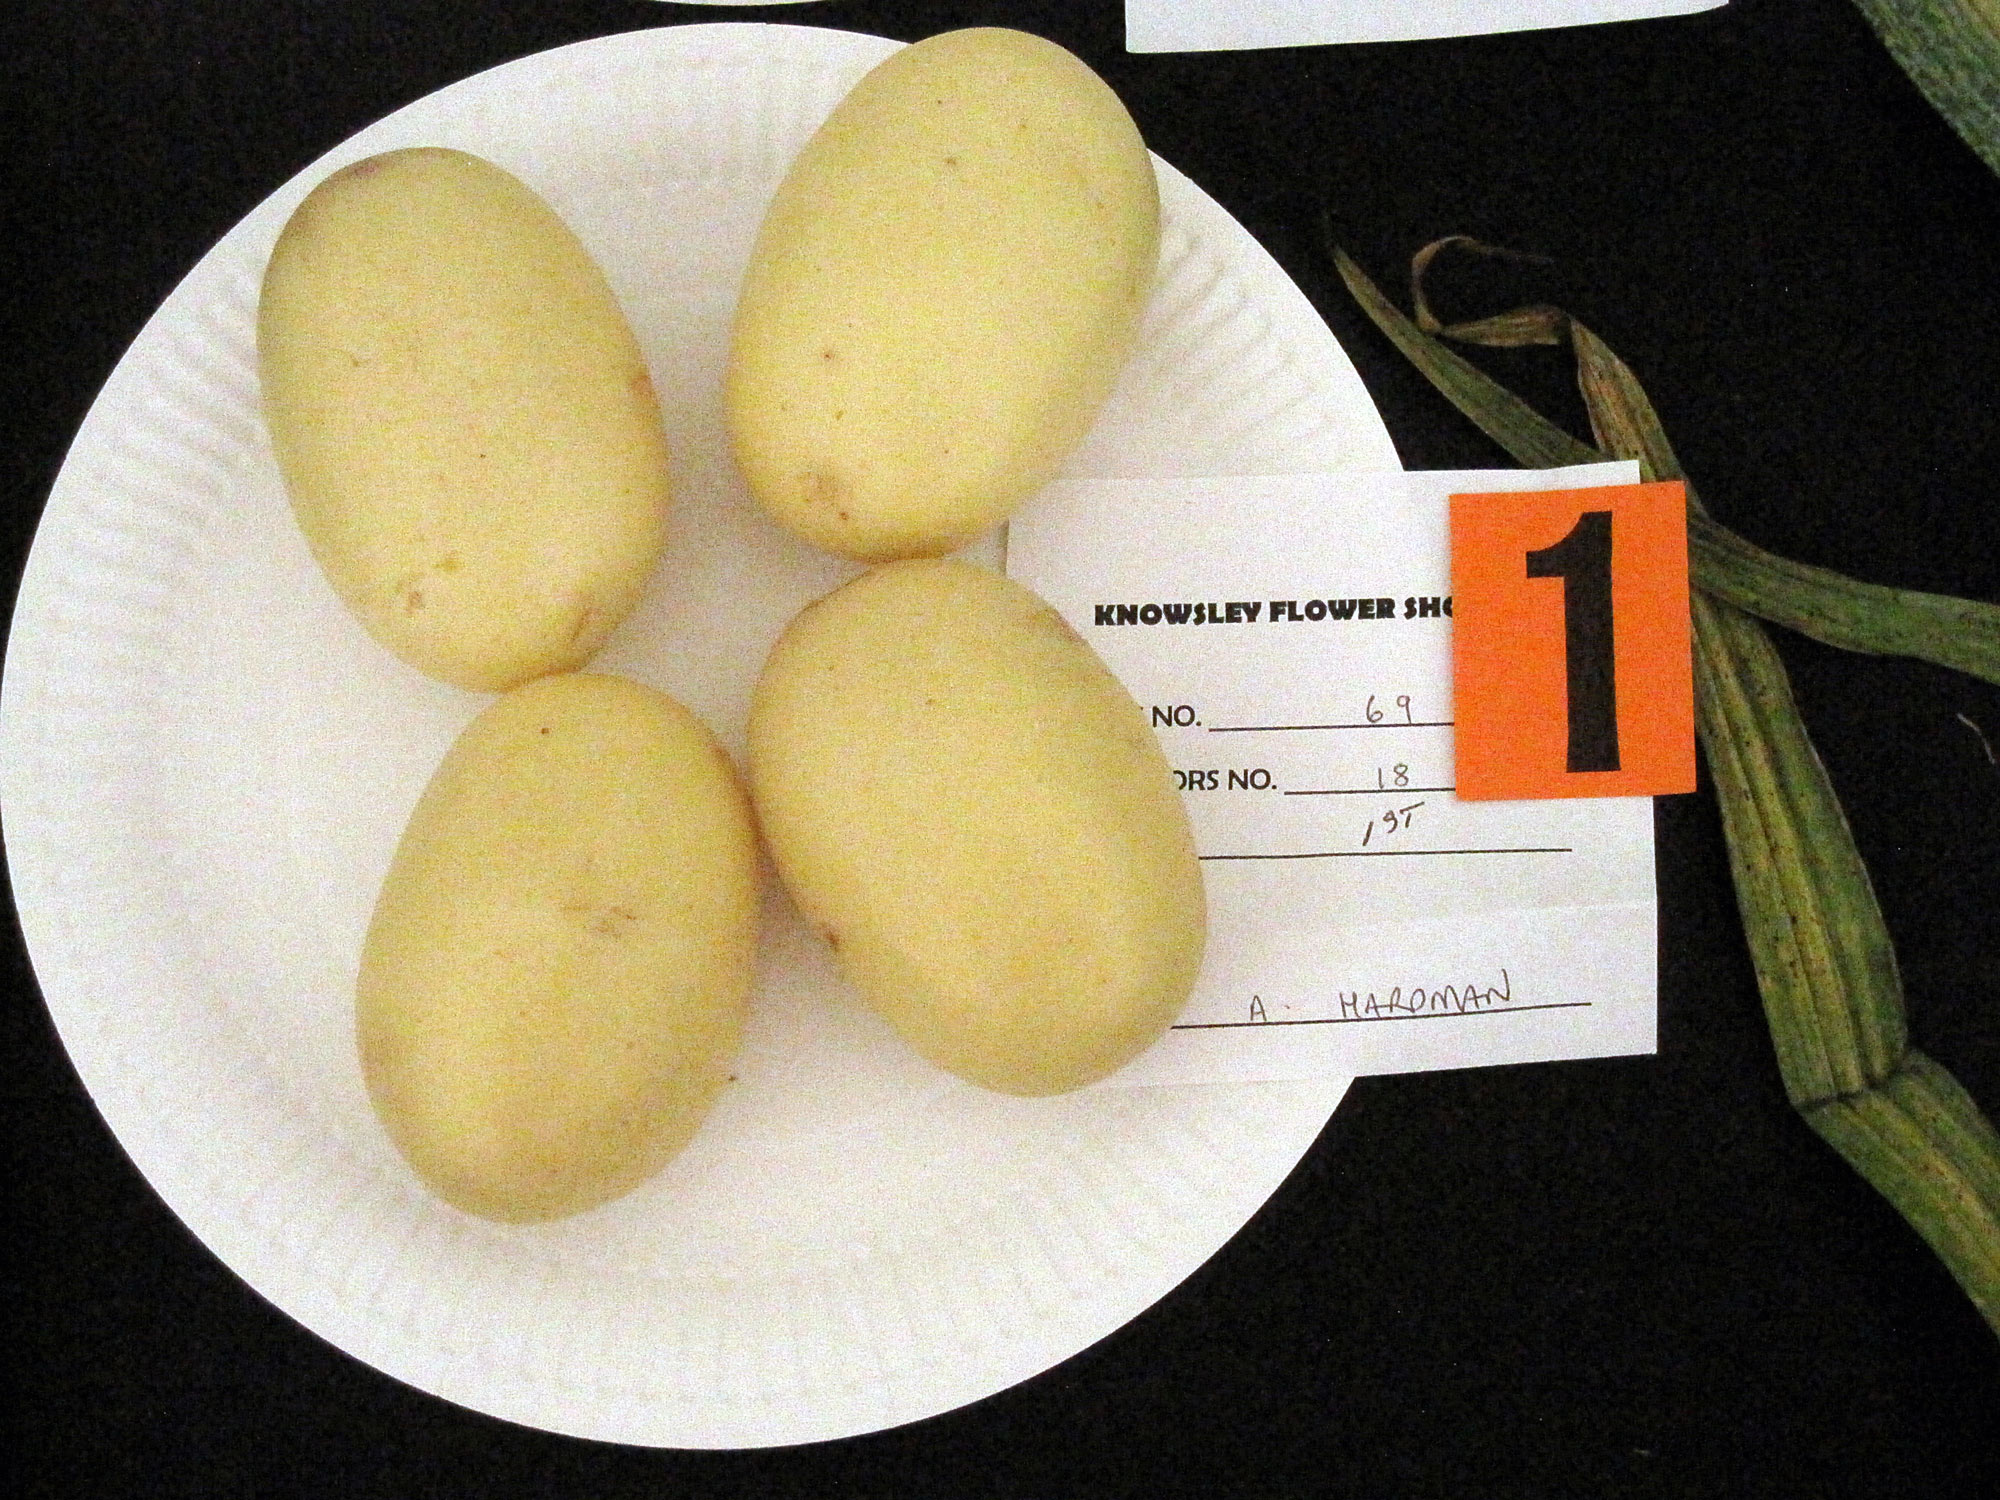 Photograph of four winning potatoes